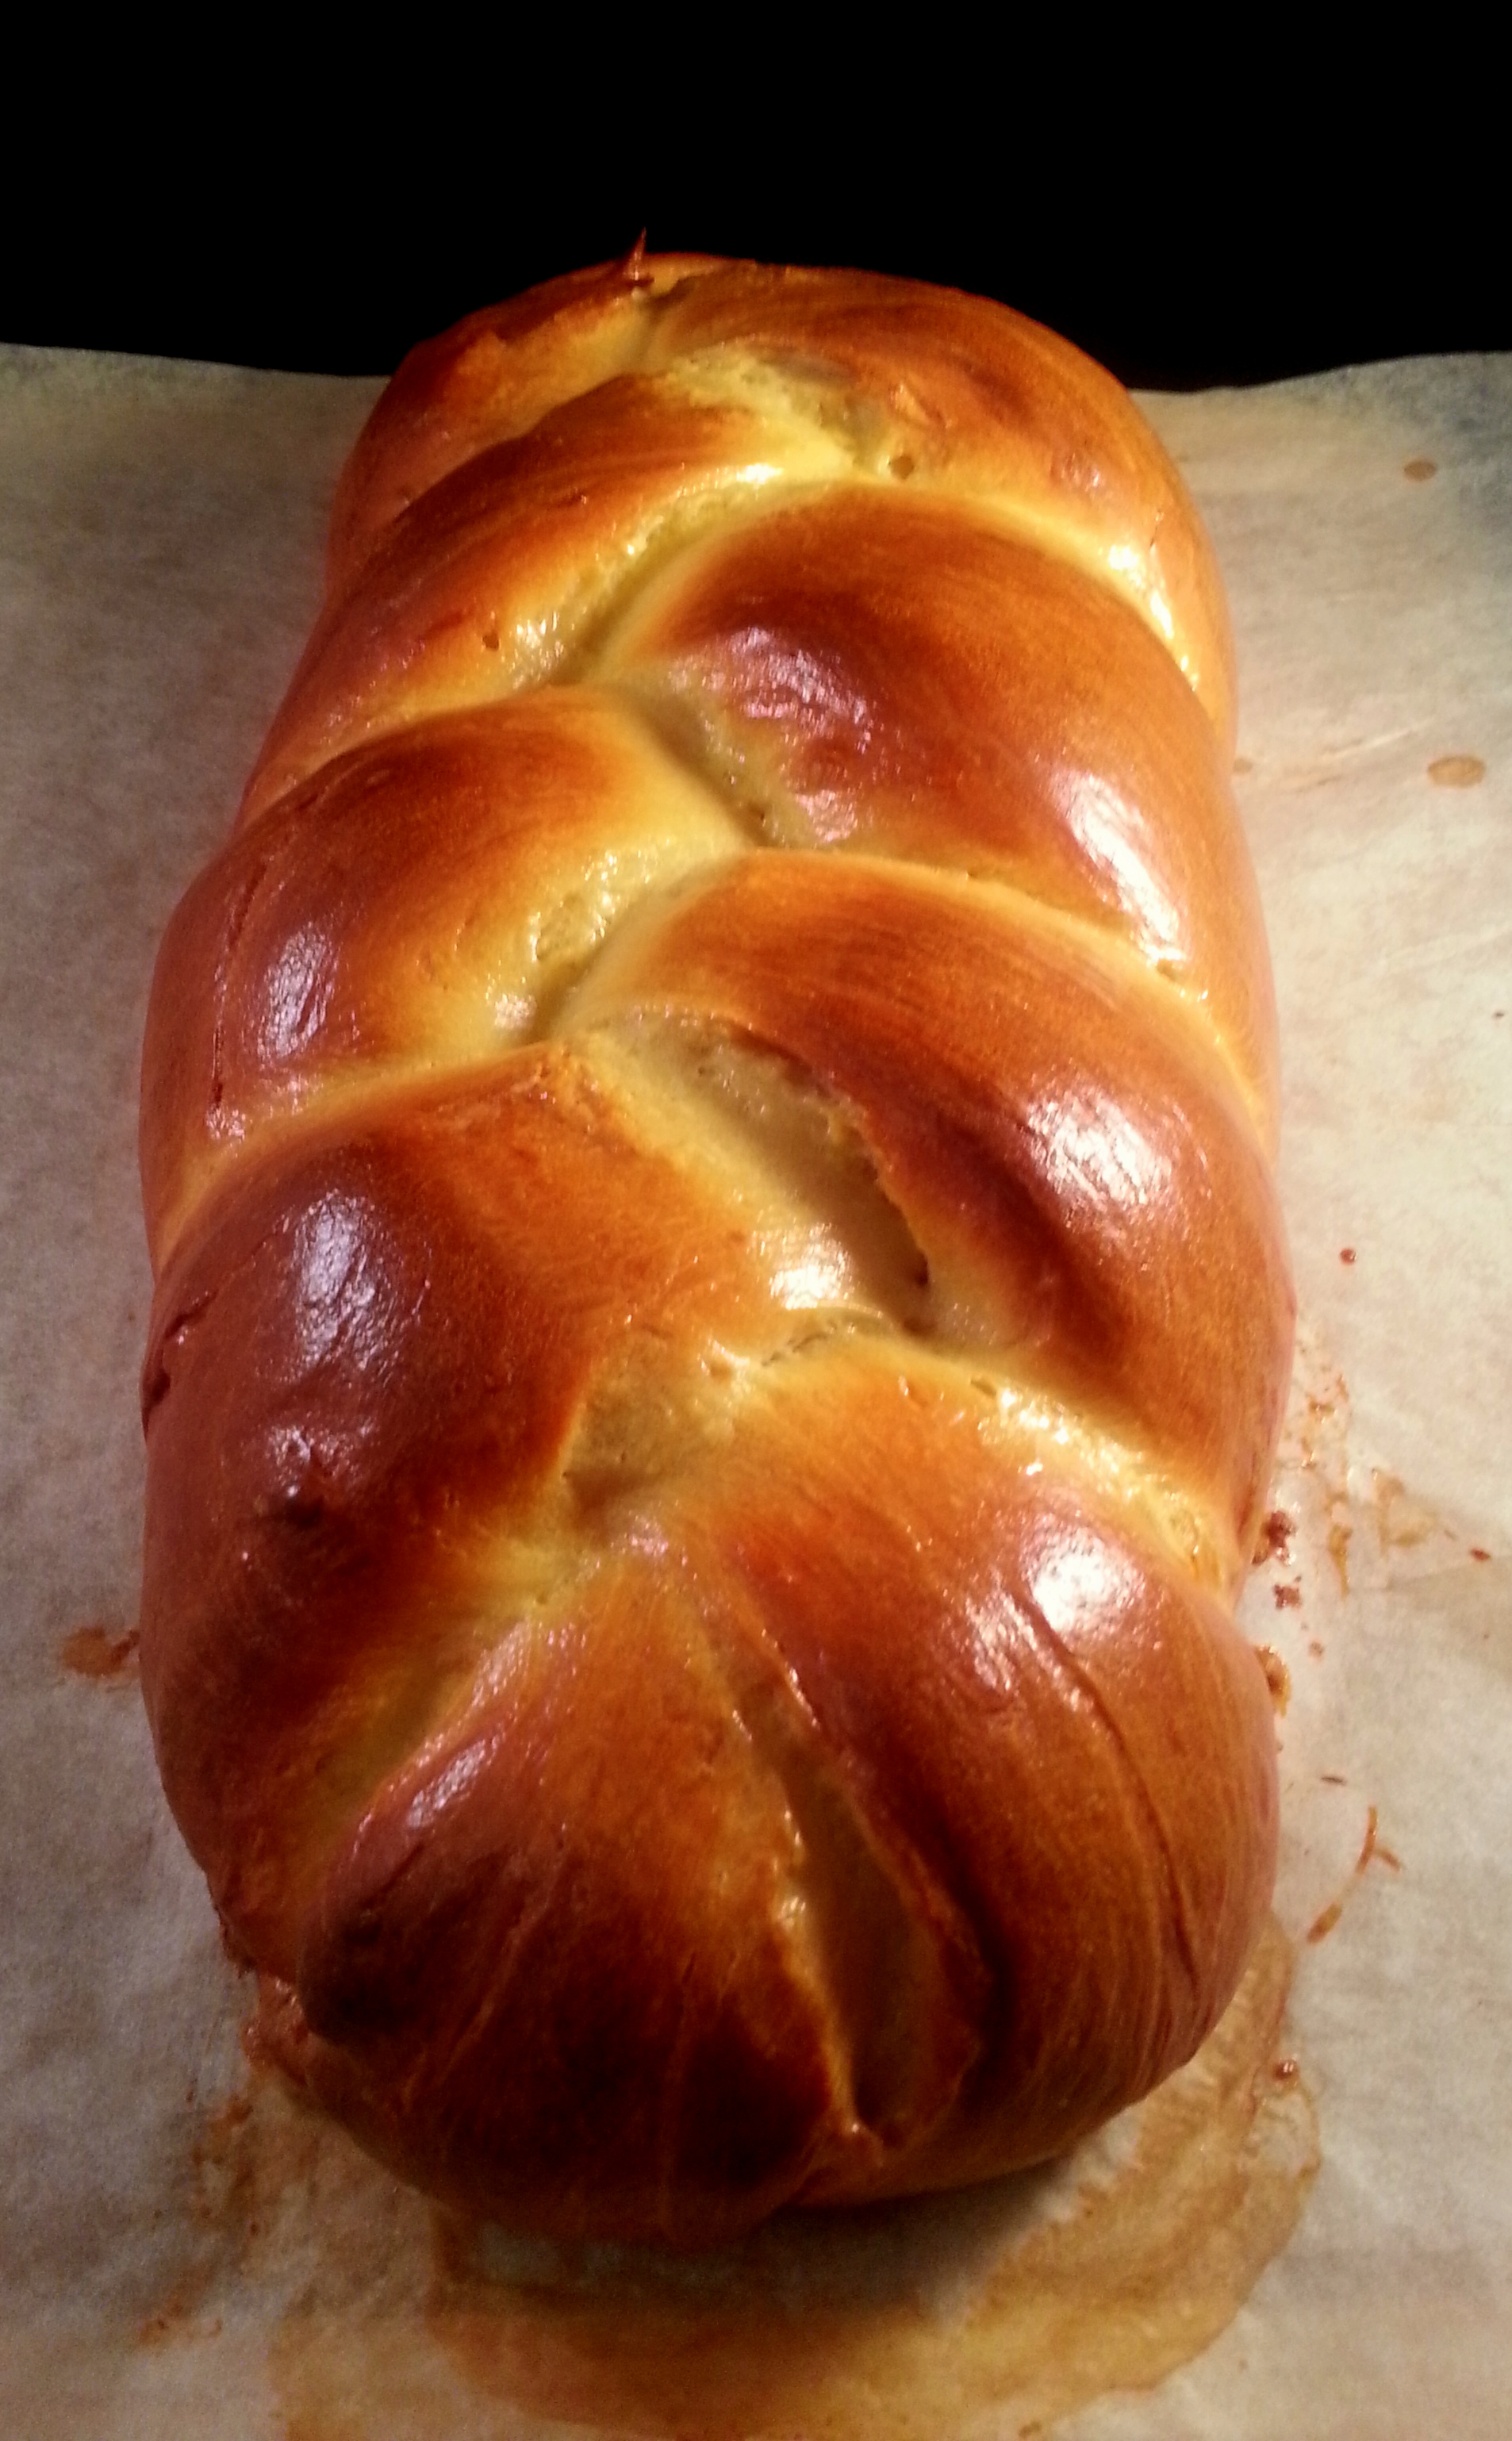 ... challah challah the way i had done for years and years the challah is